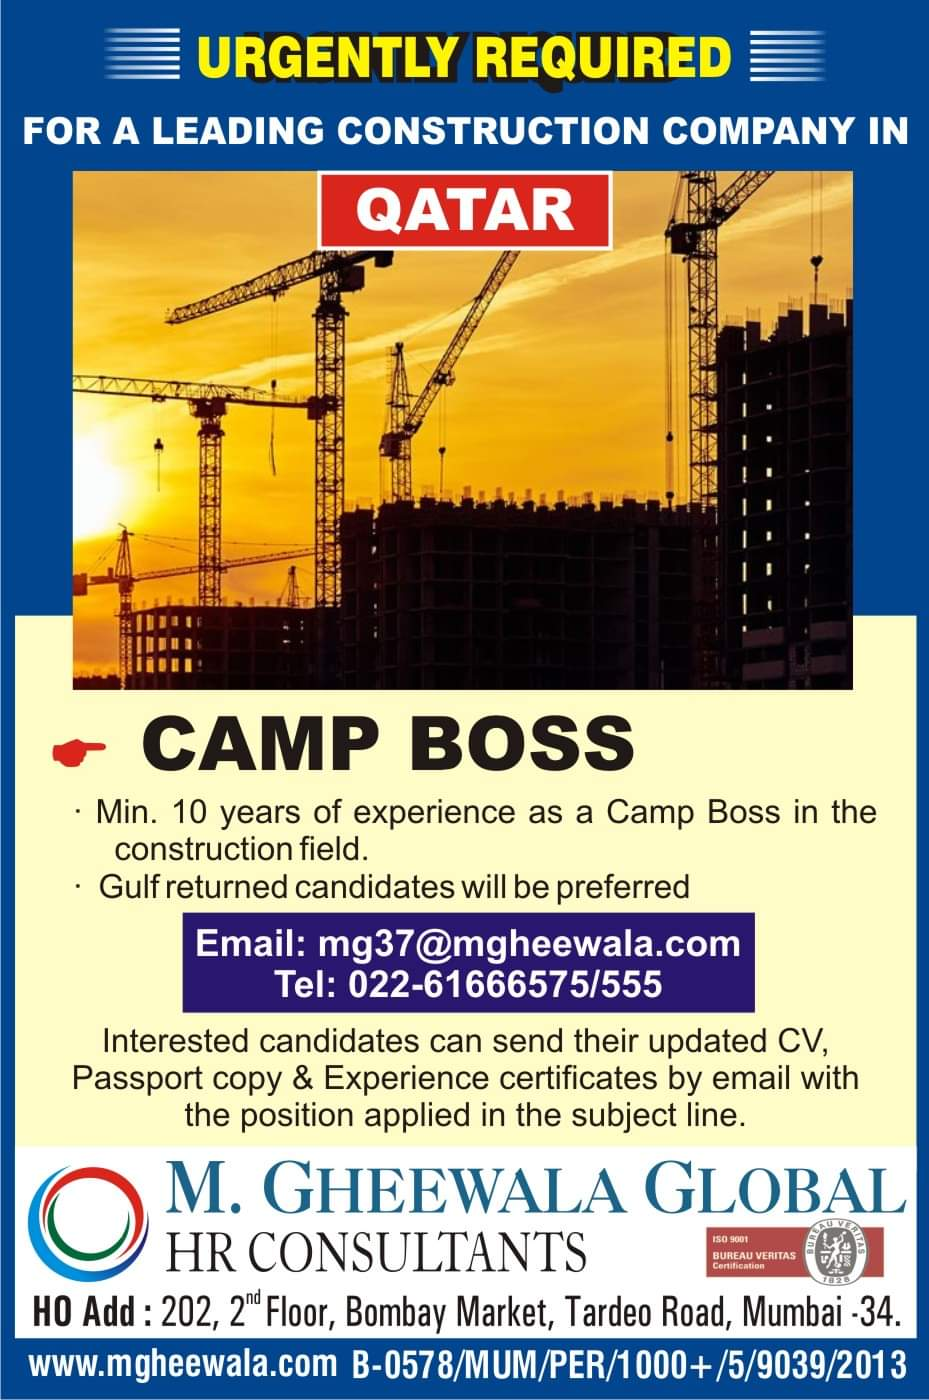 URGENTLY REQUIRED FOR A CONSTRUCTION COMPANY-QATAR